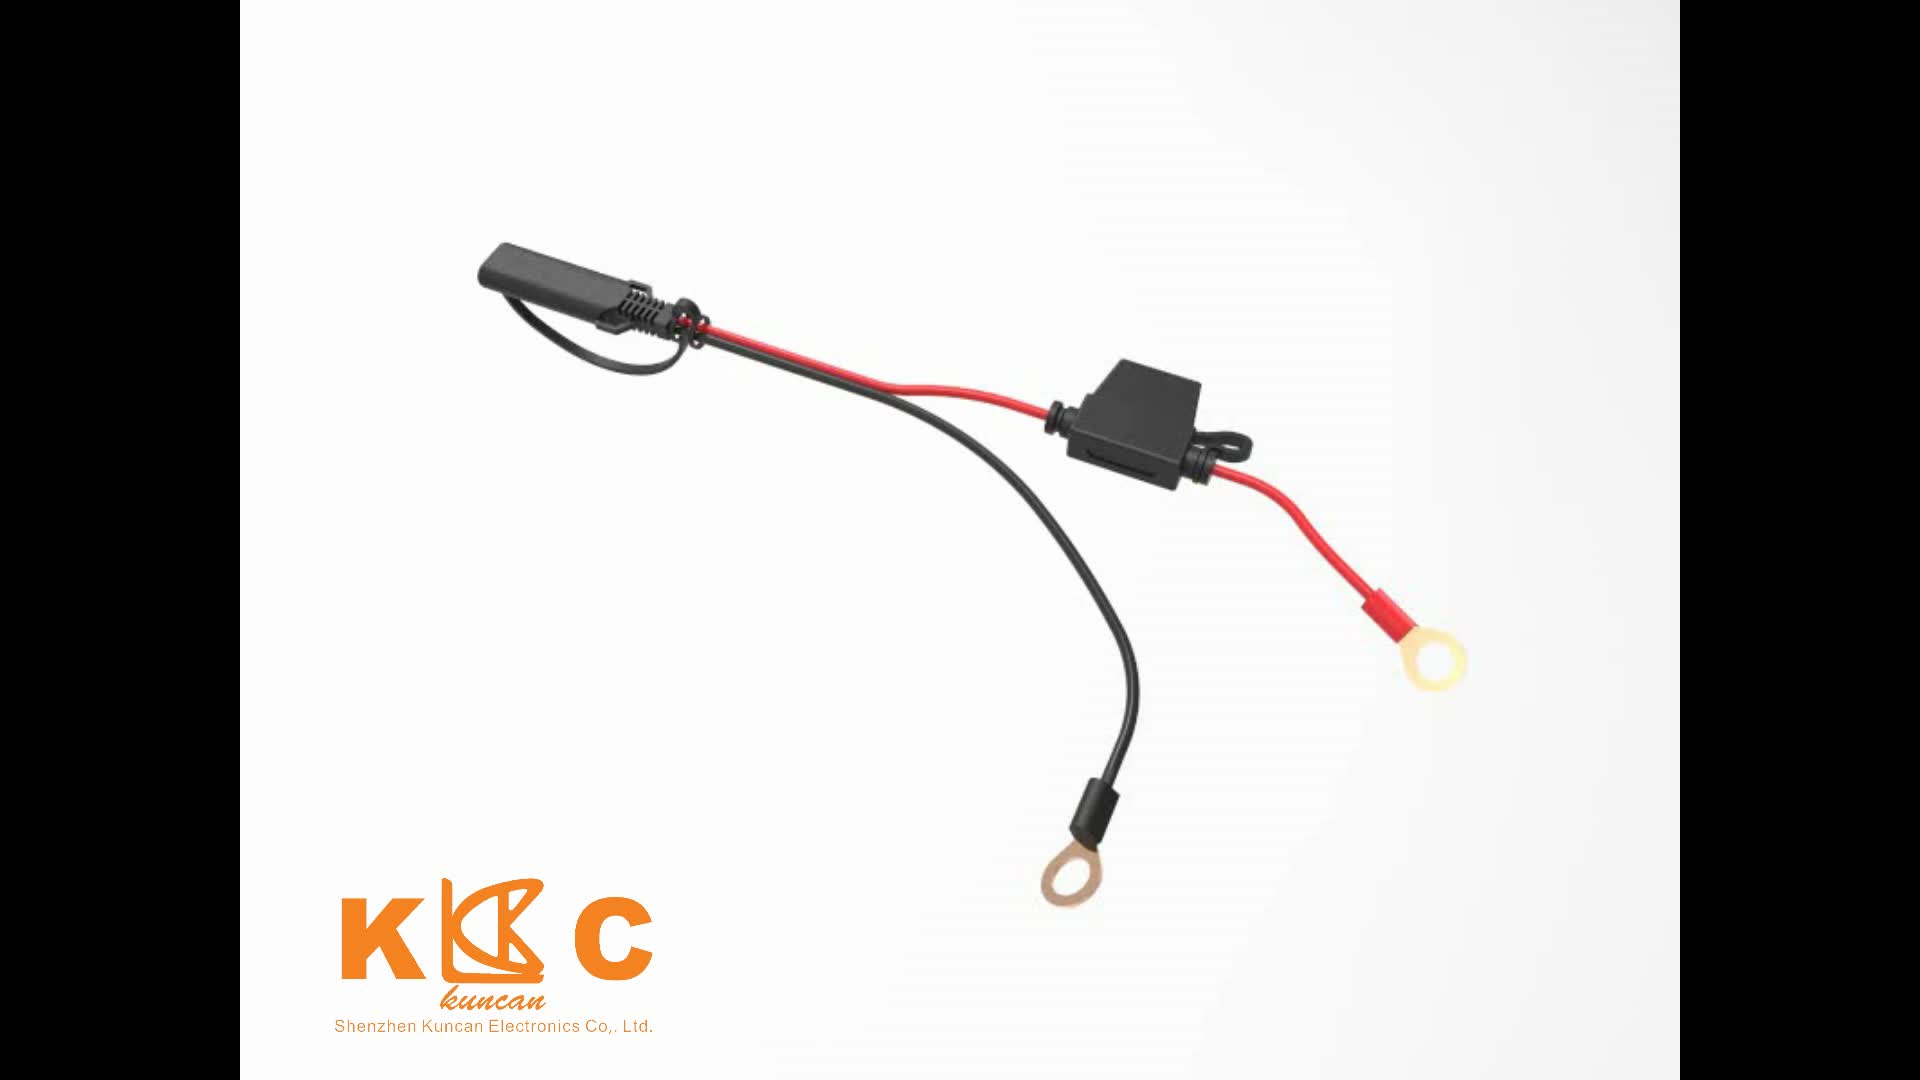 Sae Connector 7 5a Power Cable For Car Battery Charging